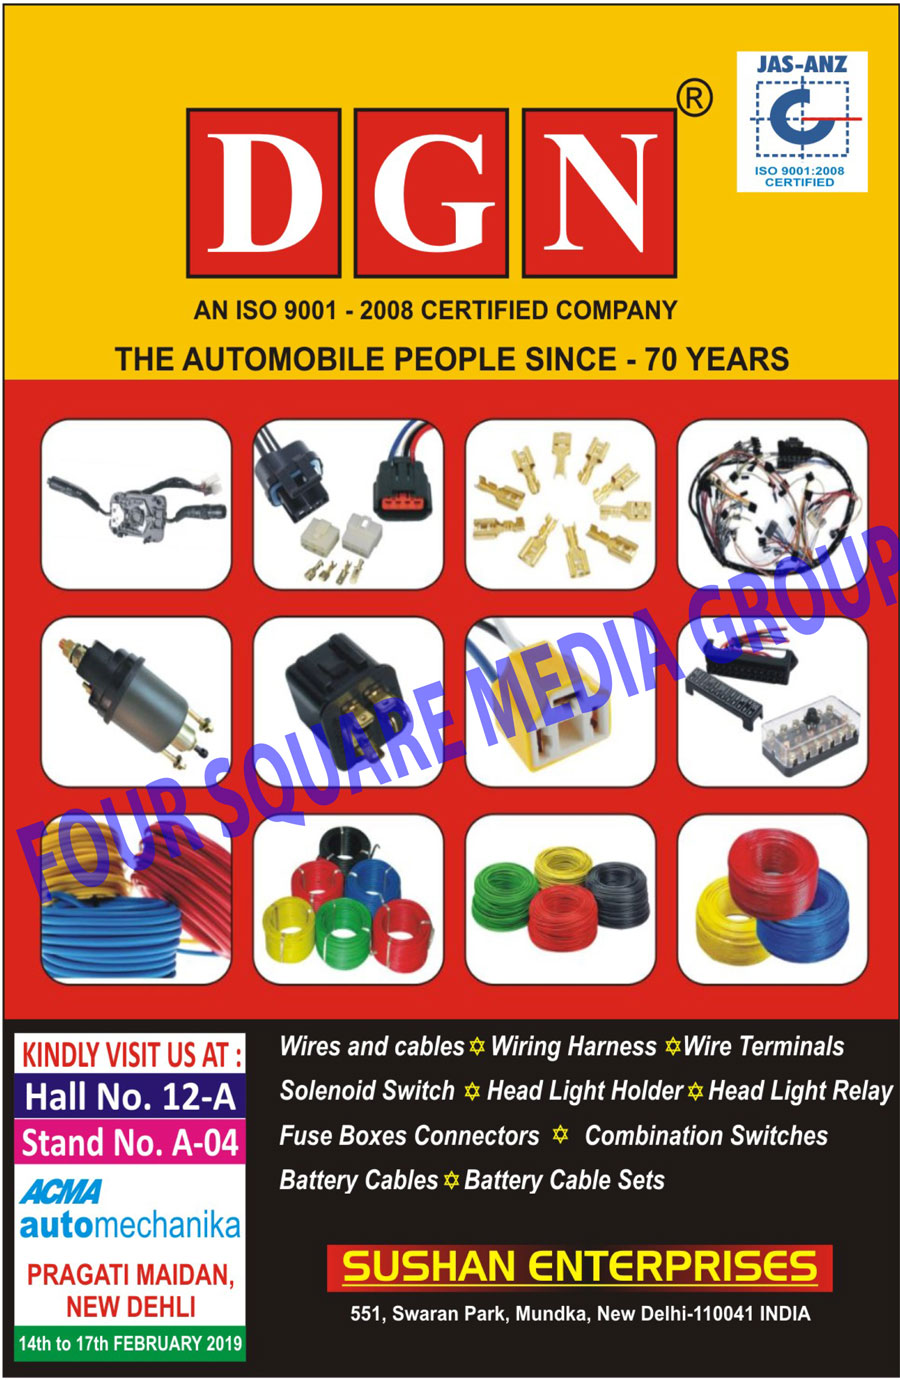 medium resolution of wires cables wiring harness wire terminal solenoid switch head light holder